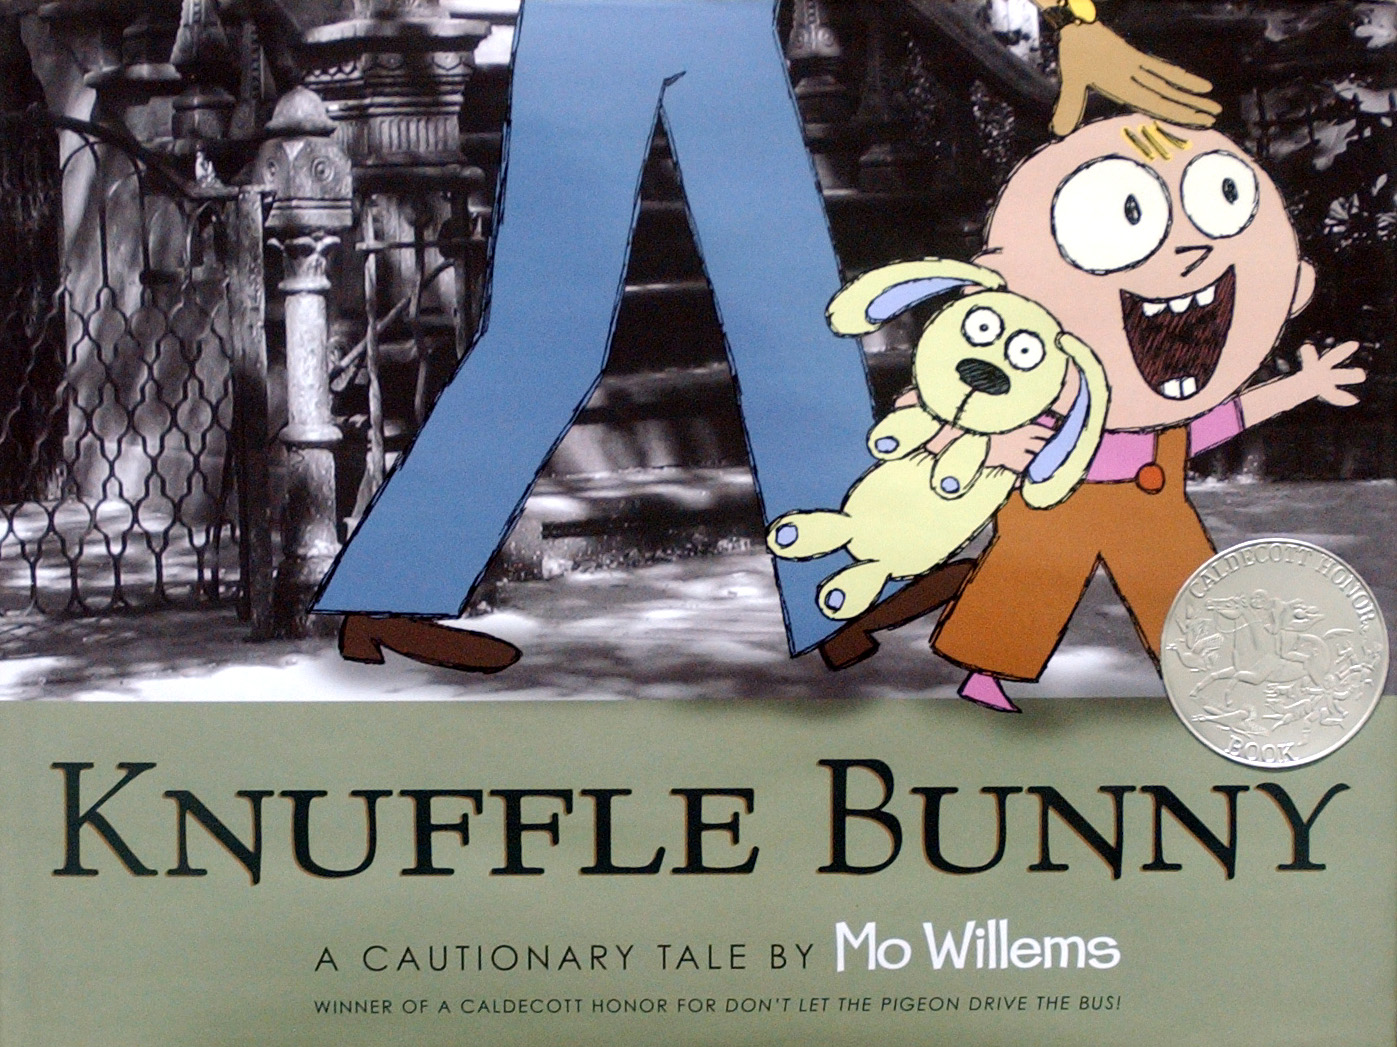 hight resolution of my daughter adores mo willems books knuffle bunny and knuffle bunny too she speaks of trixie and her family as her friends and she knows the stories